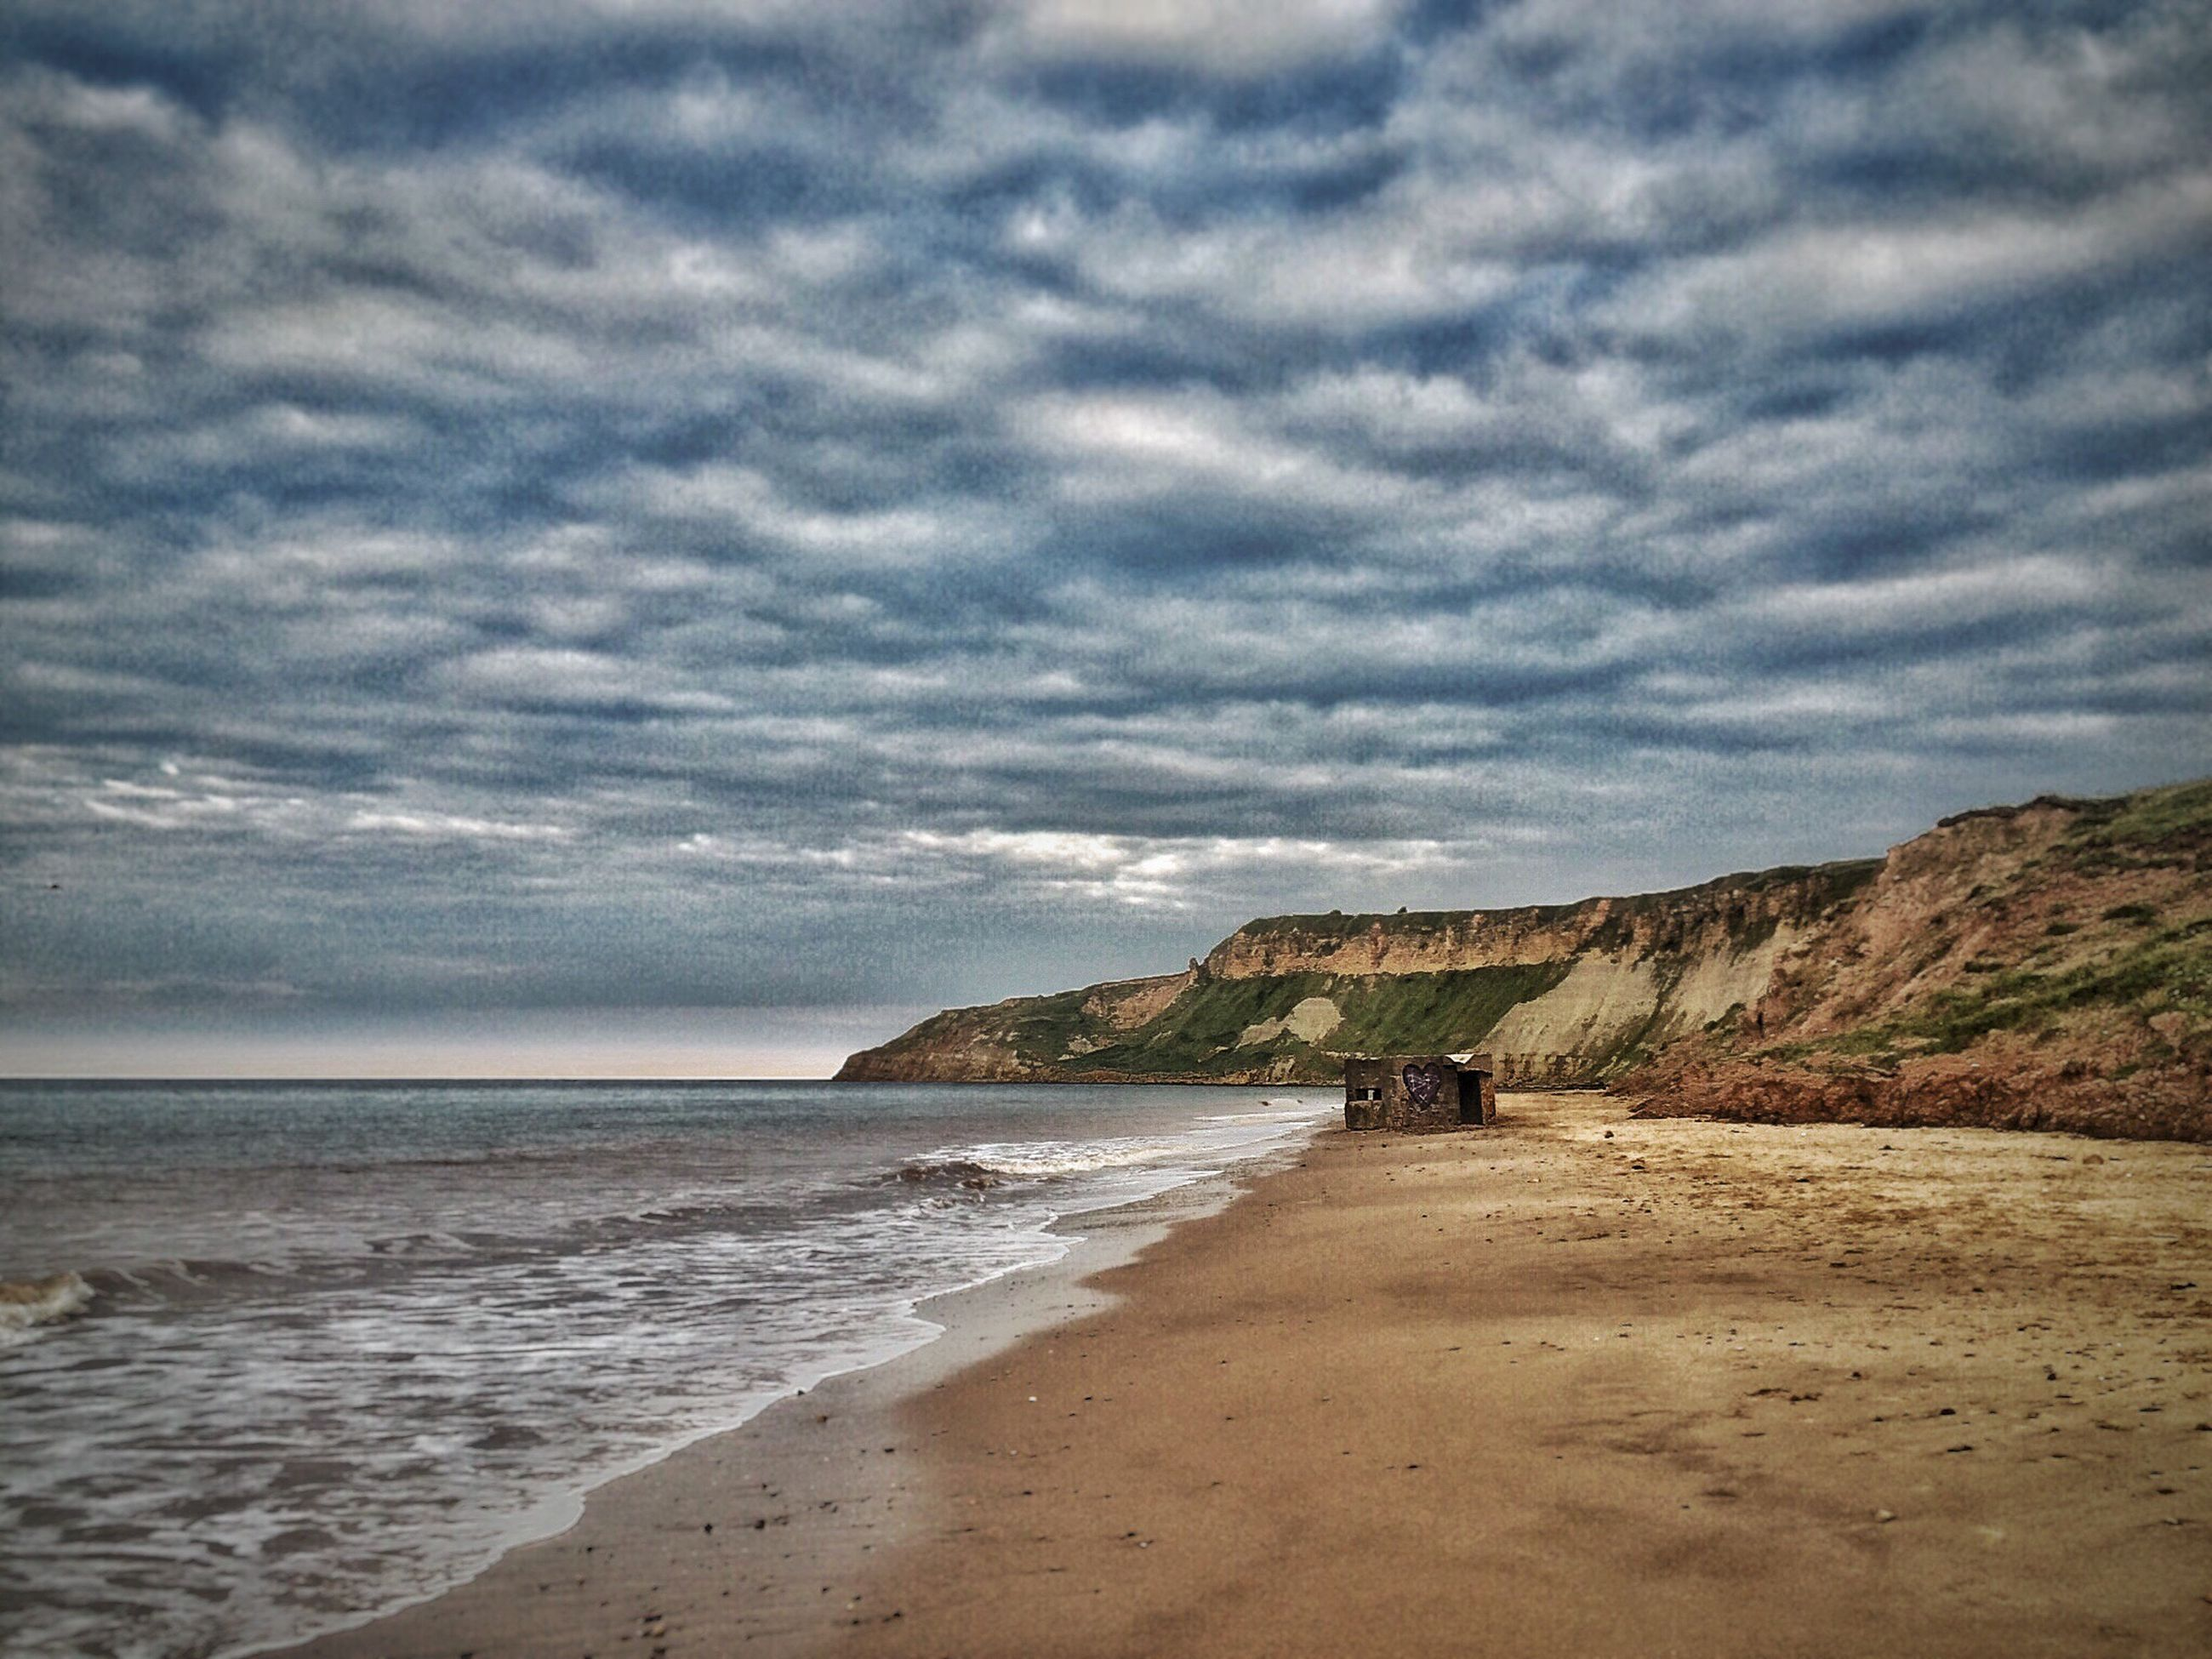 sea, water, sky, beach, horizon over water, cloud - sky, cloudy, shore, built structure, scenics, tranquil scene, tranquility, beauty in nature, cloud, nature, overcast, coastline, weather, idyllic, outdoors, day, calm, remote, no people, non-urban scene, dramatic sky, ocean, travel destinations